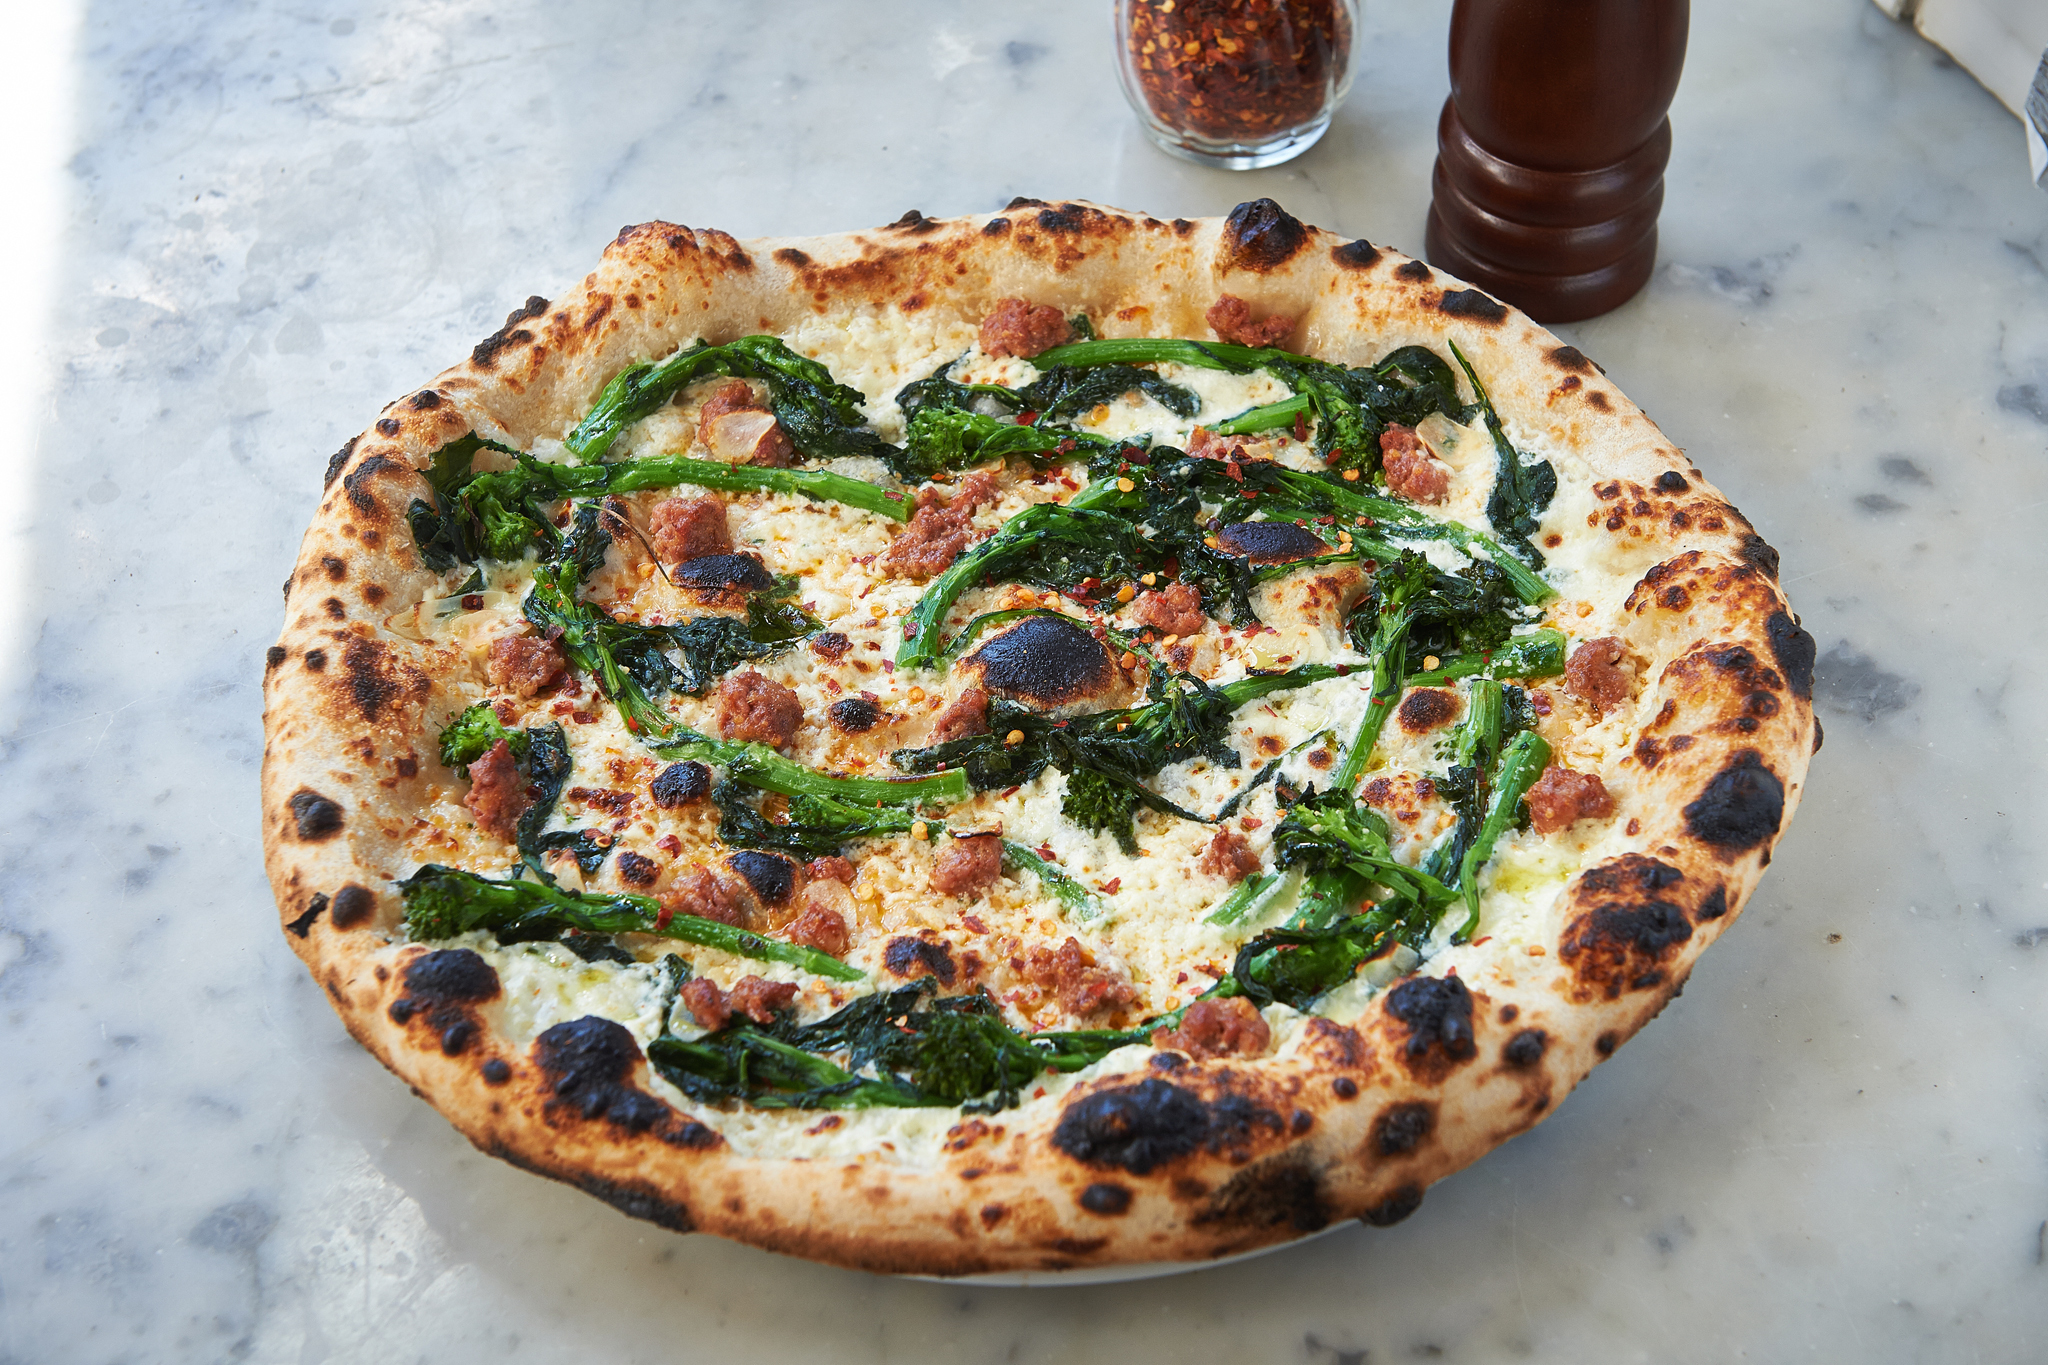 100 best New York restaurants: Best pizza and pie shops